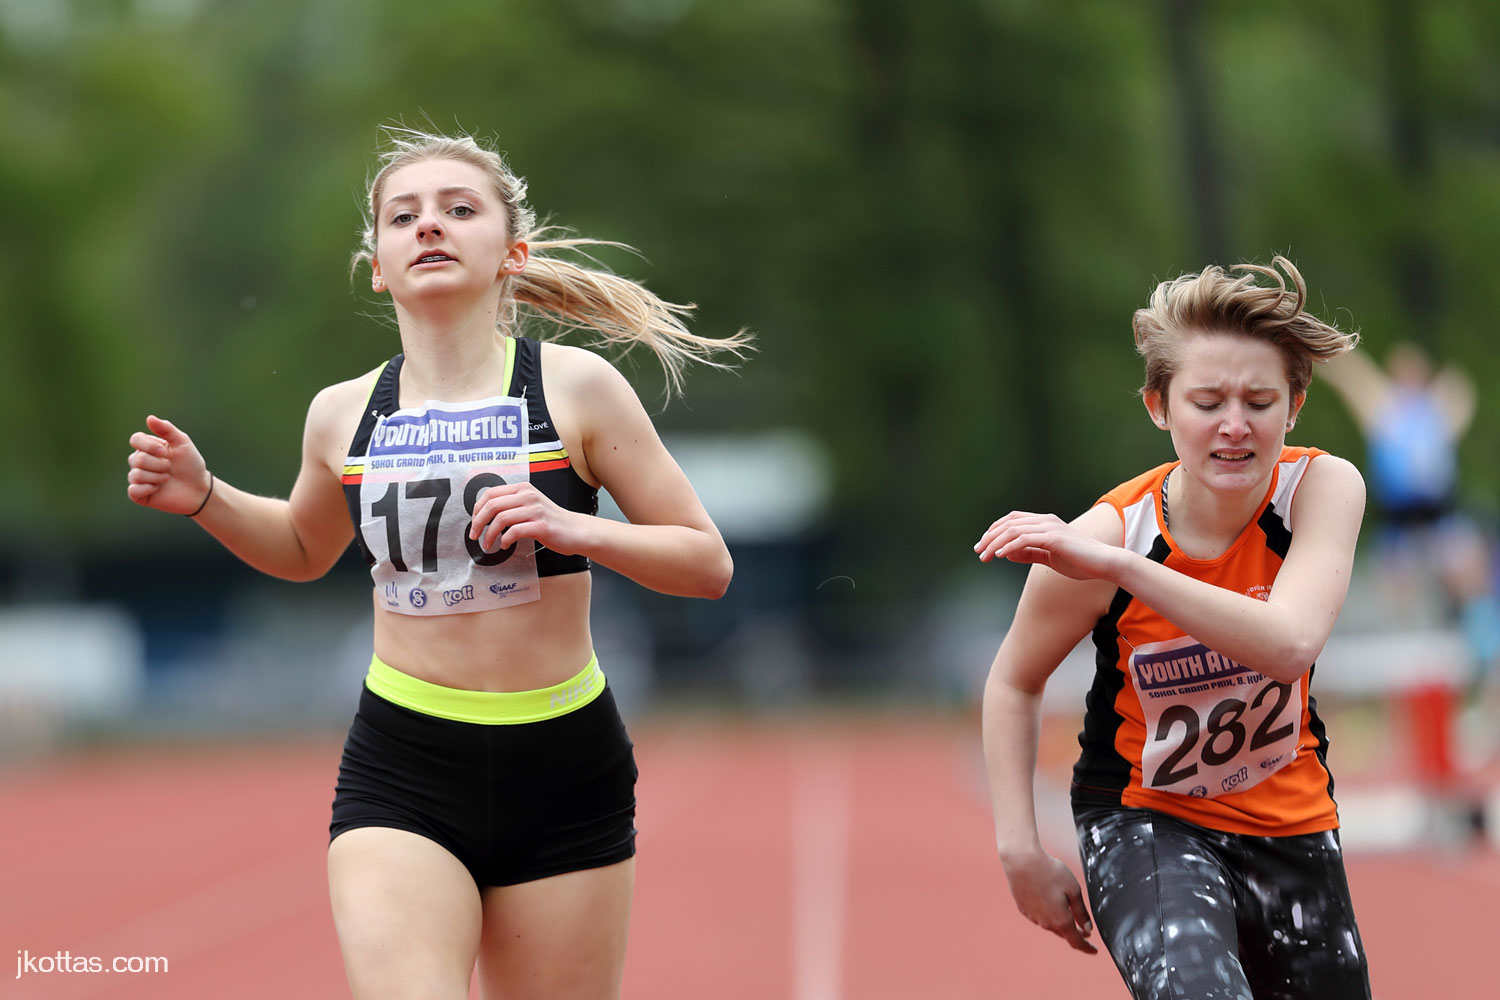 youth-athletics-kolin-31